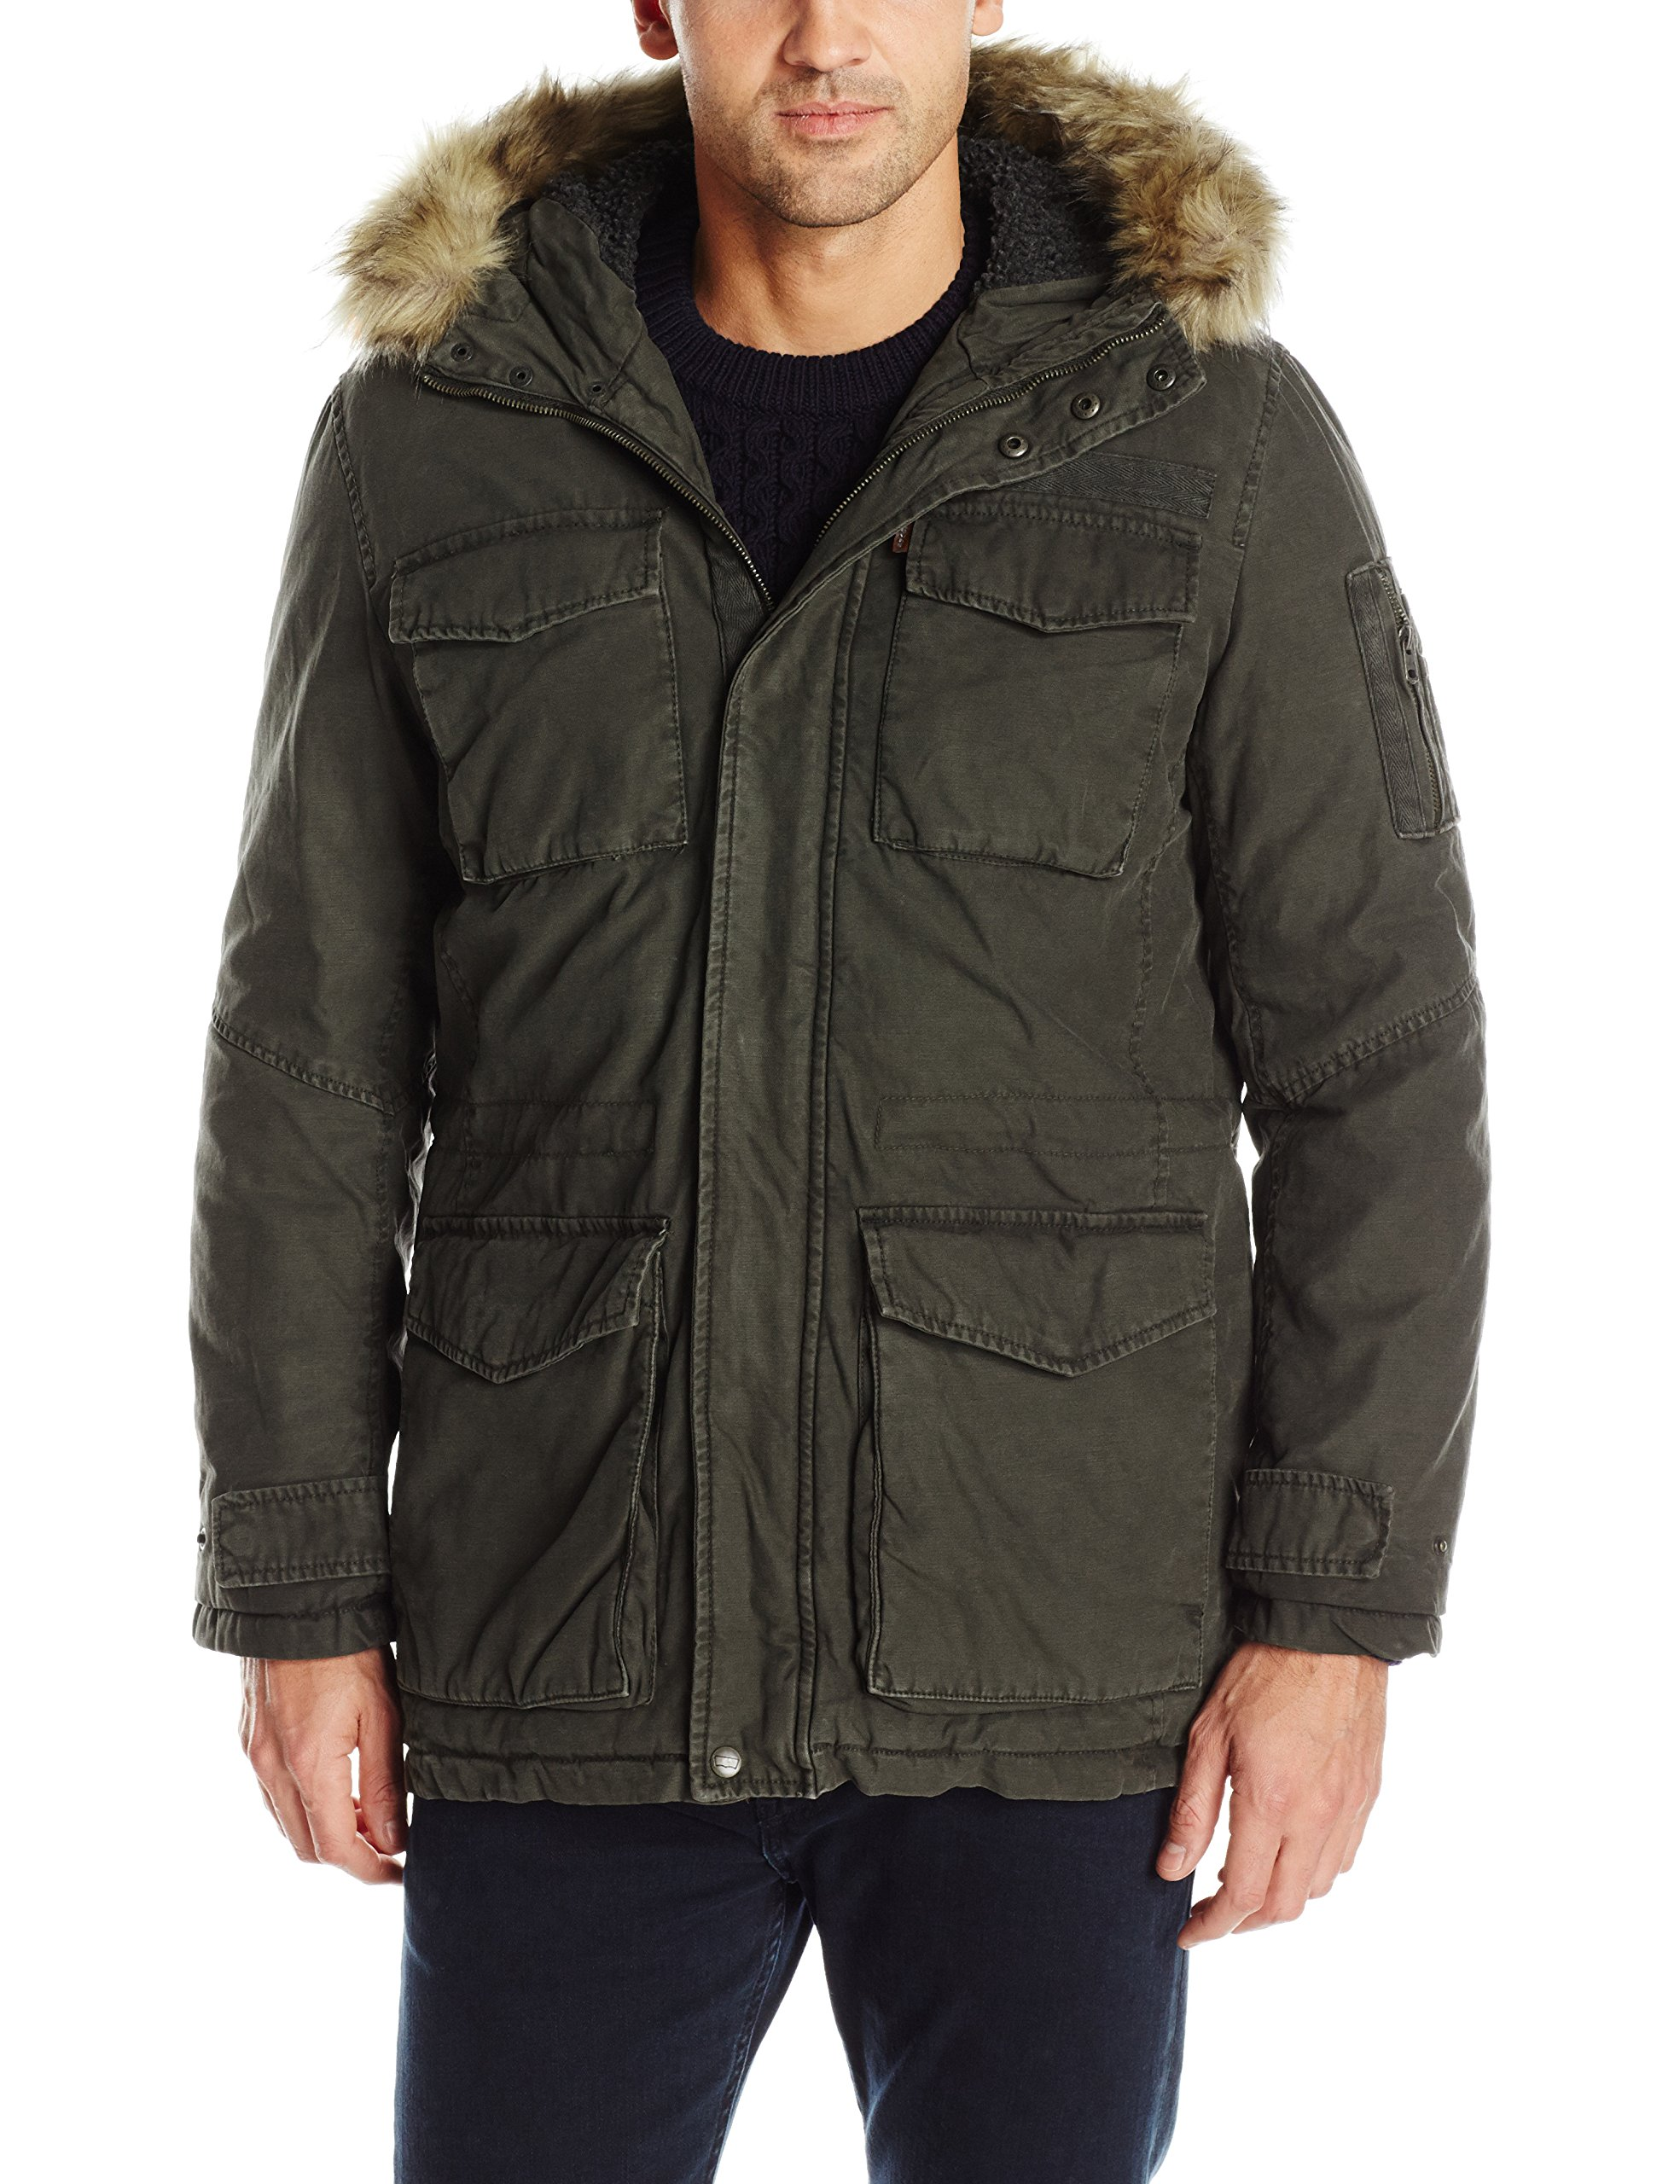 Levi's Men's Washed Cotton Sherpa Lined Parka with Removable Faux Fur Trim, Olive, L by Levi's